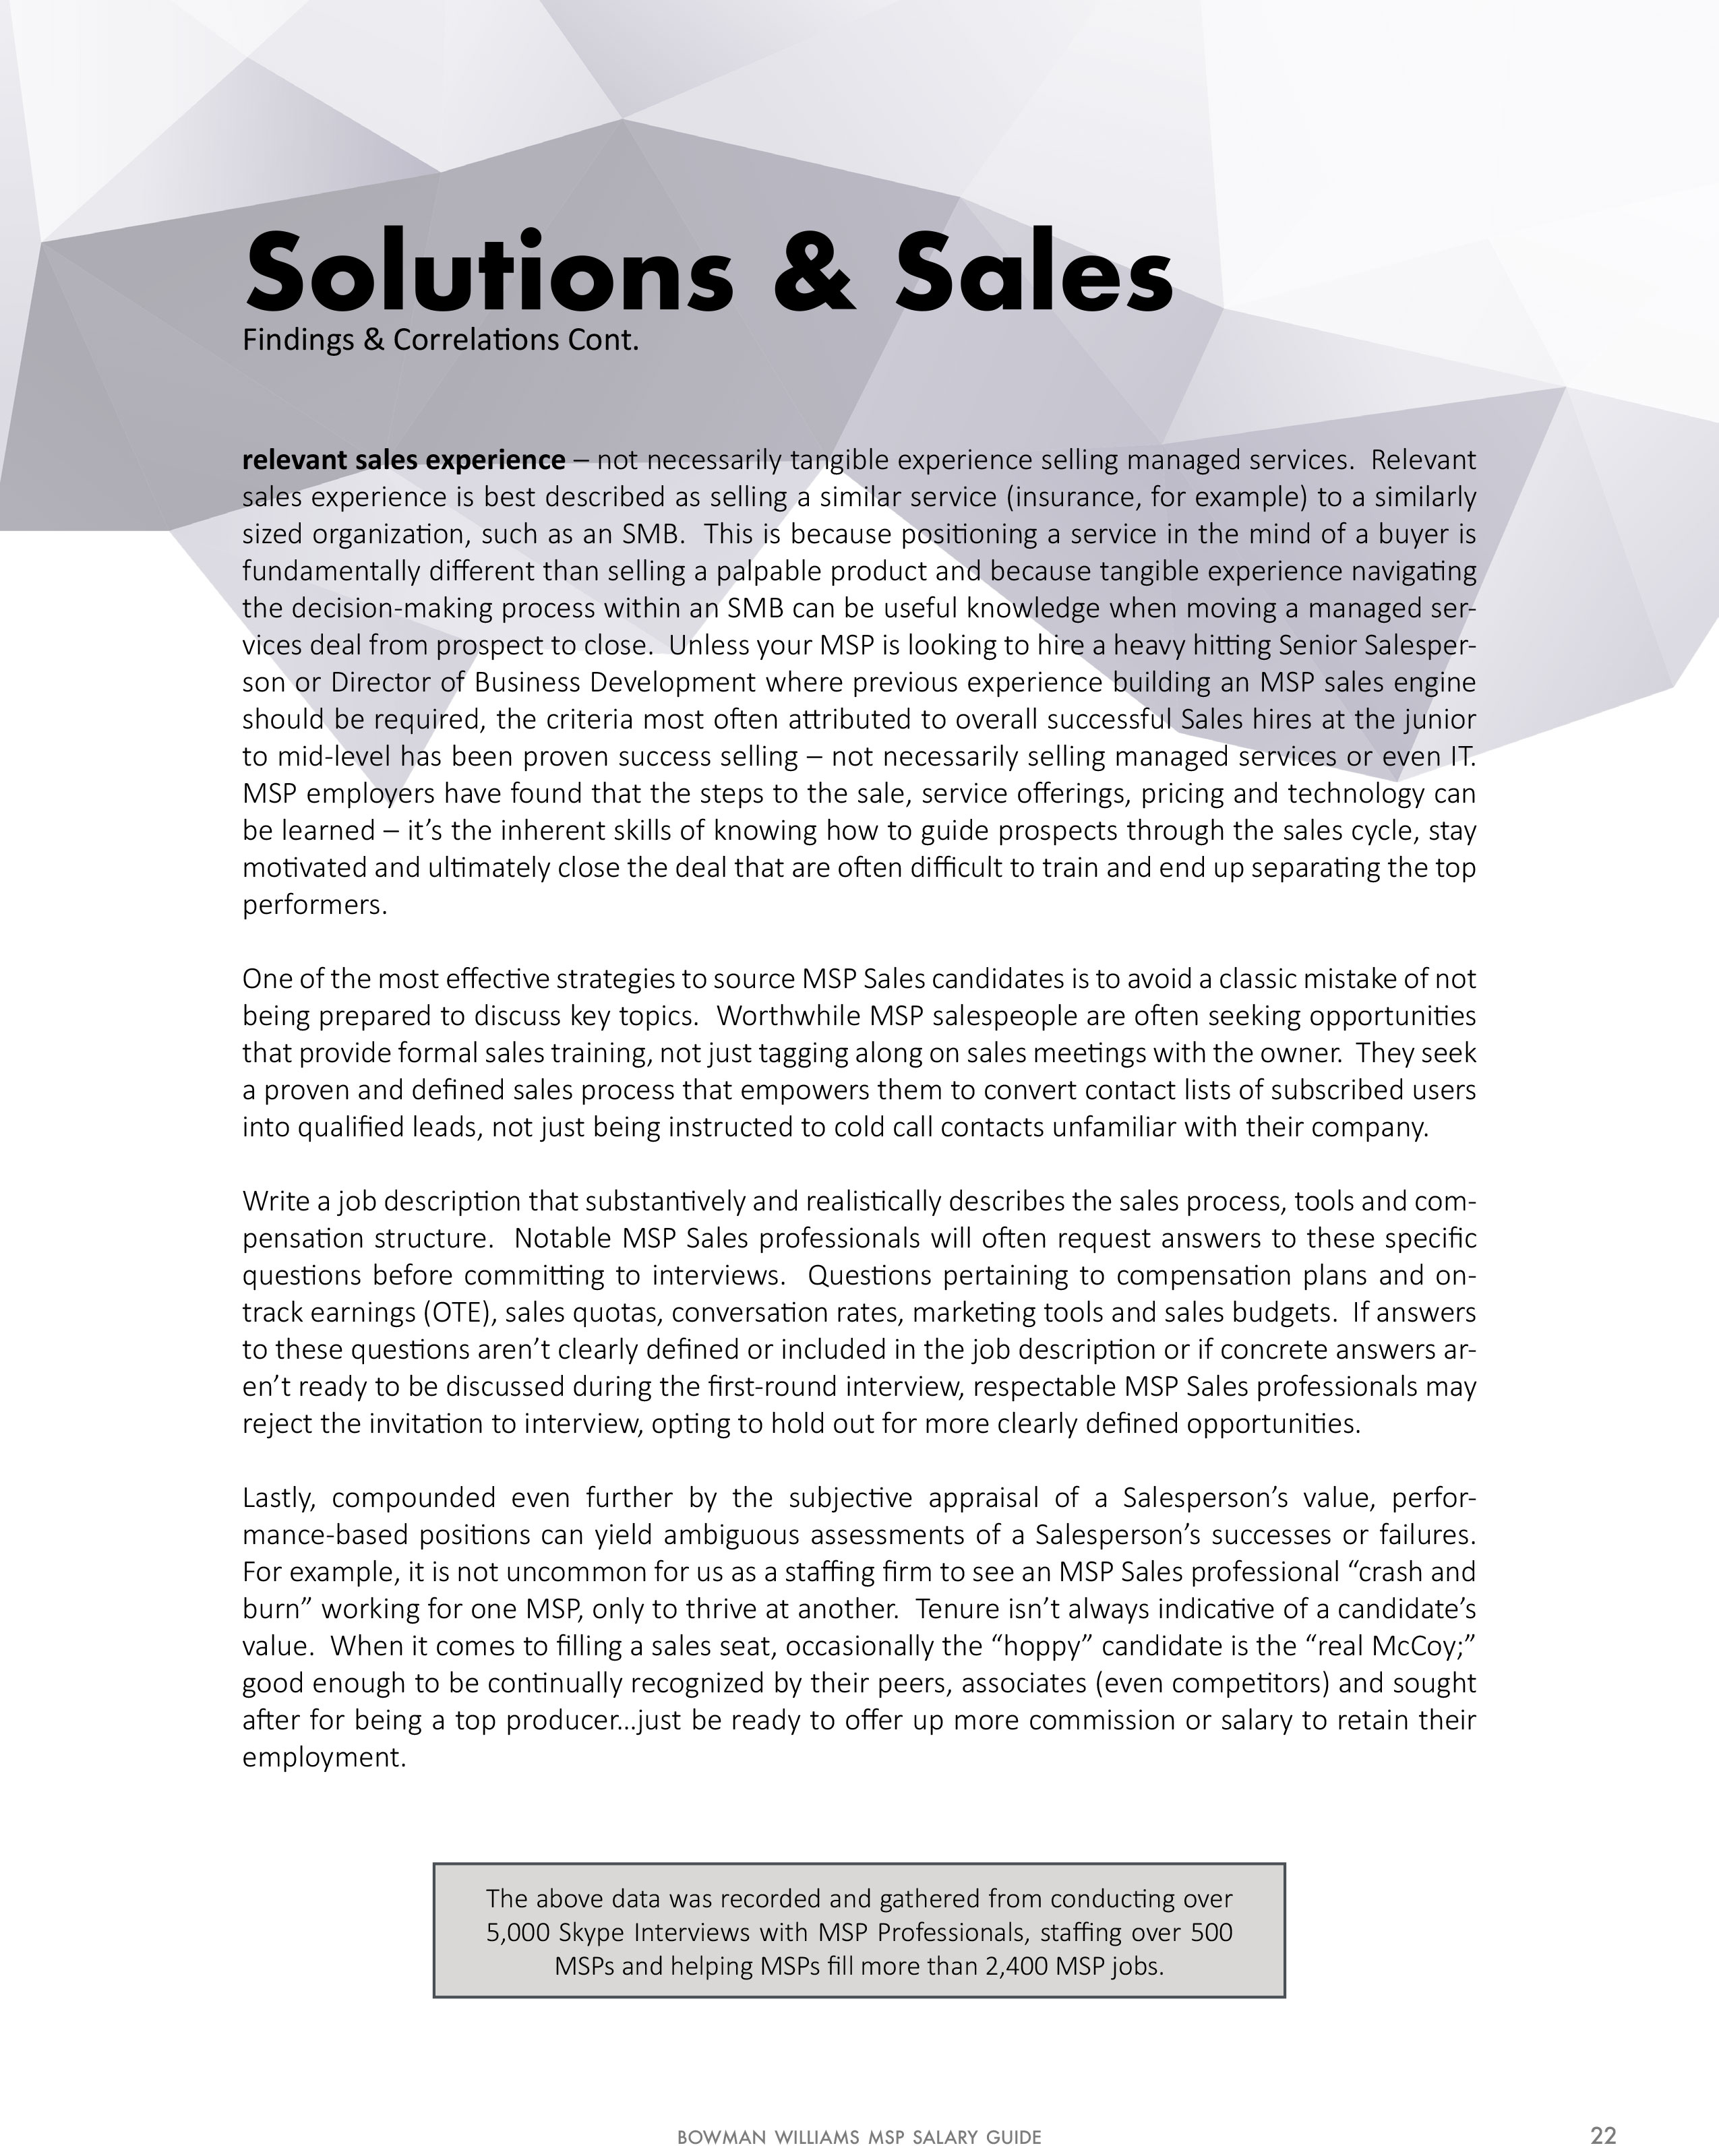 solutions-sales-3-1